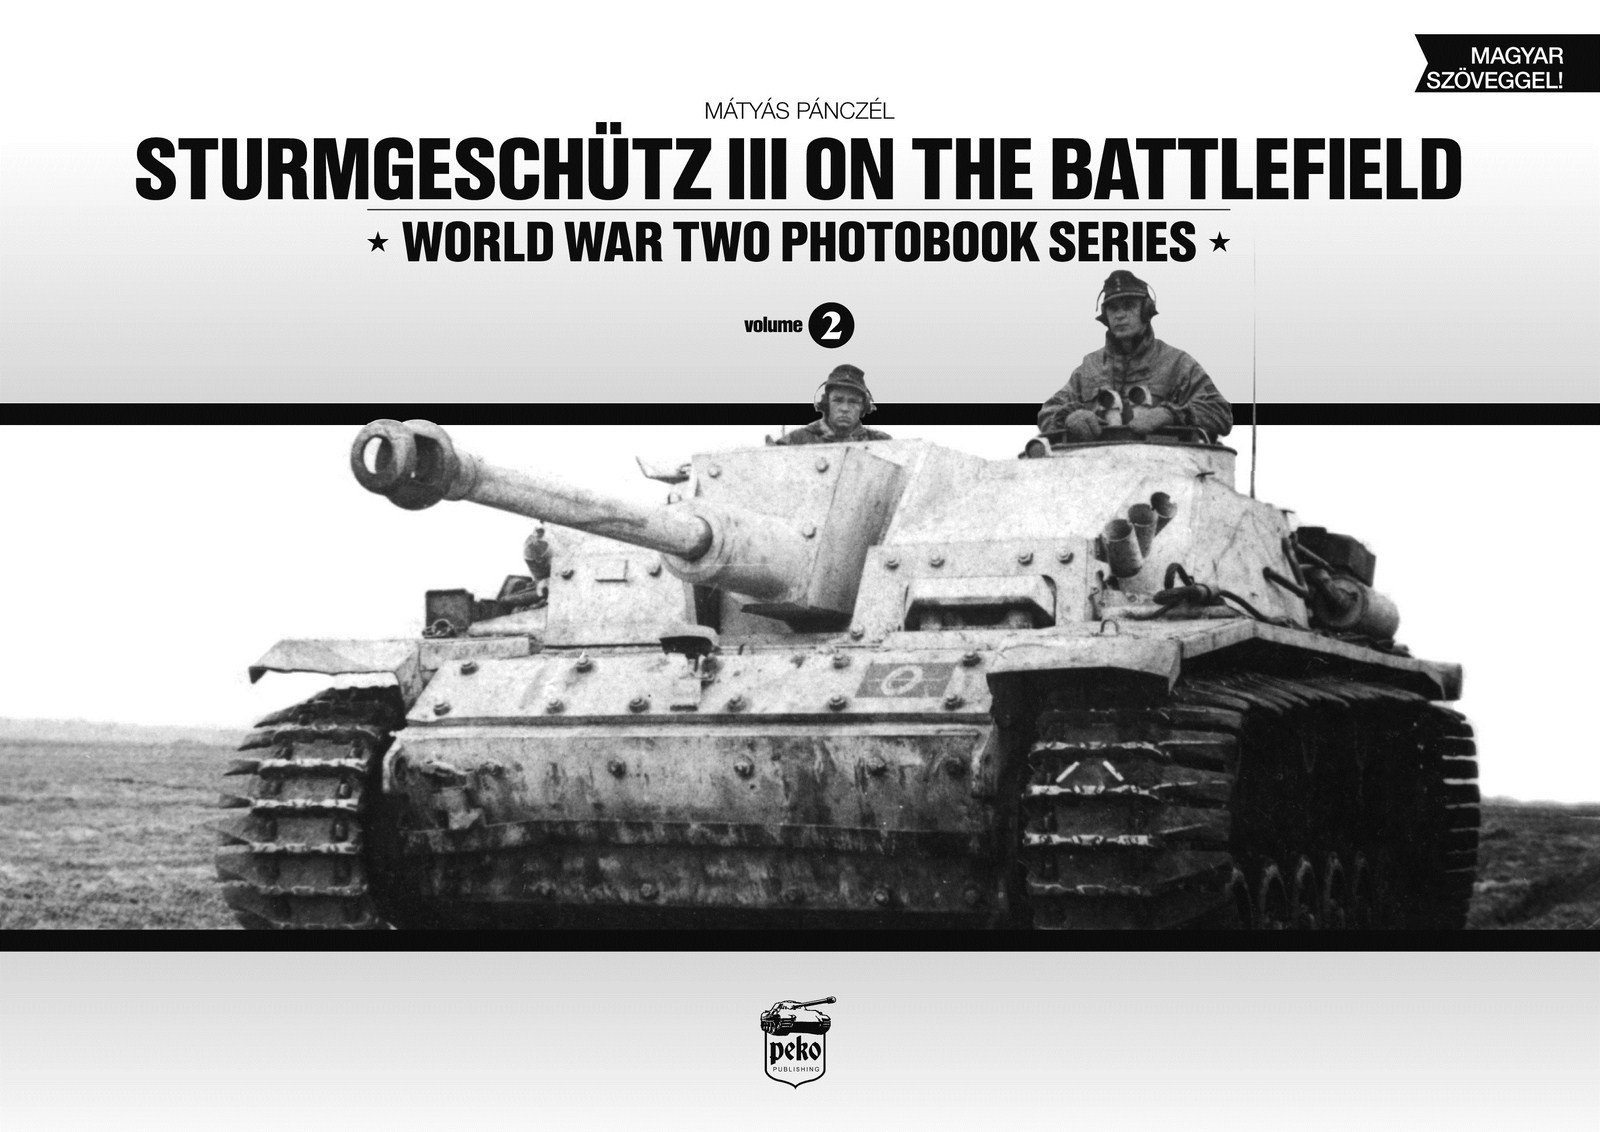 Sturmgeschutz III on the Battlefield, Volume 1 (World War Two Photobook Series)